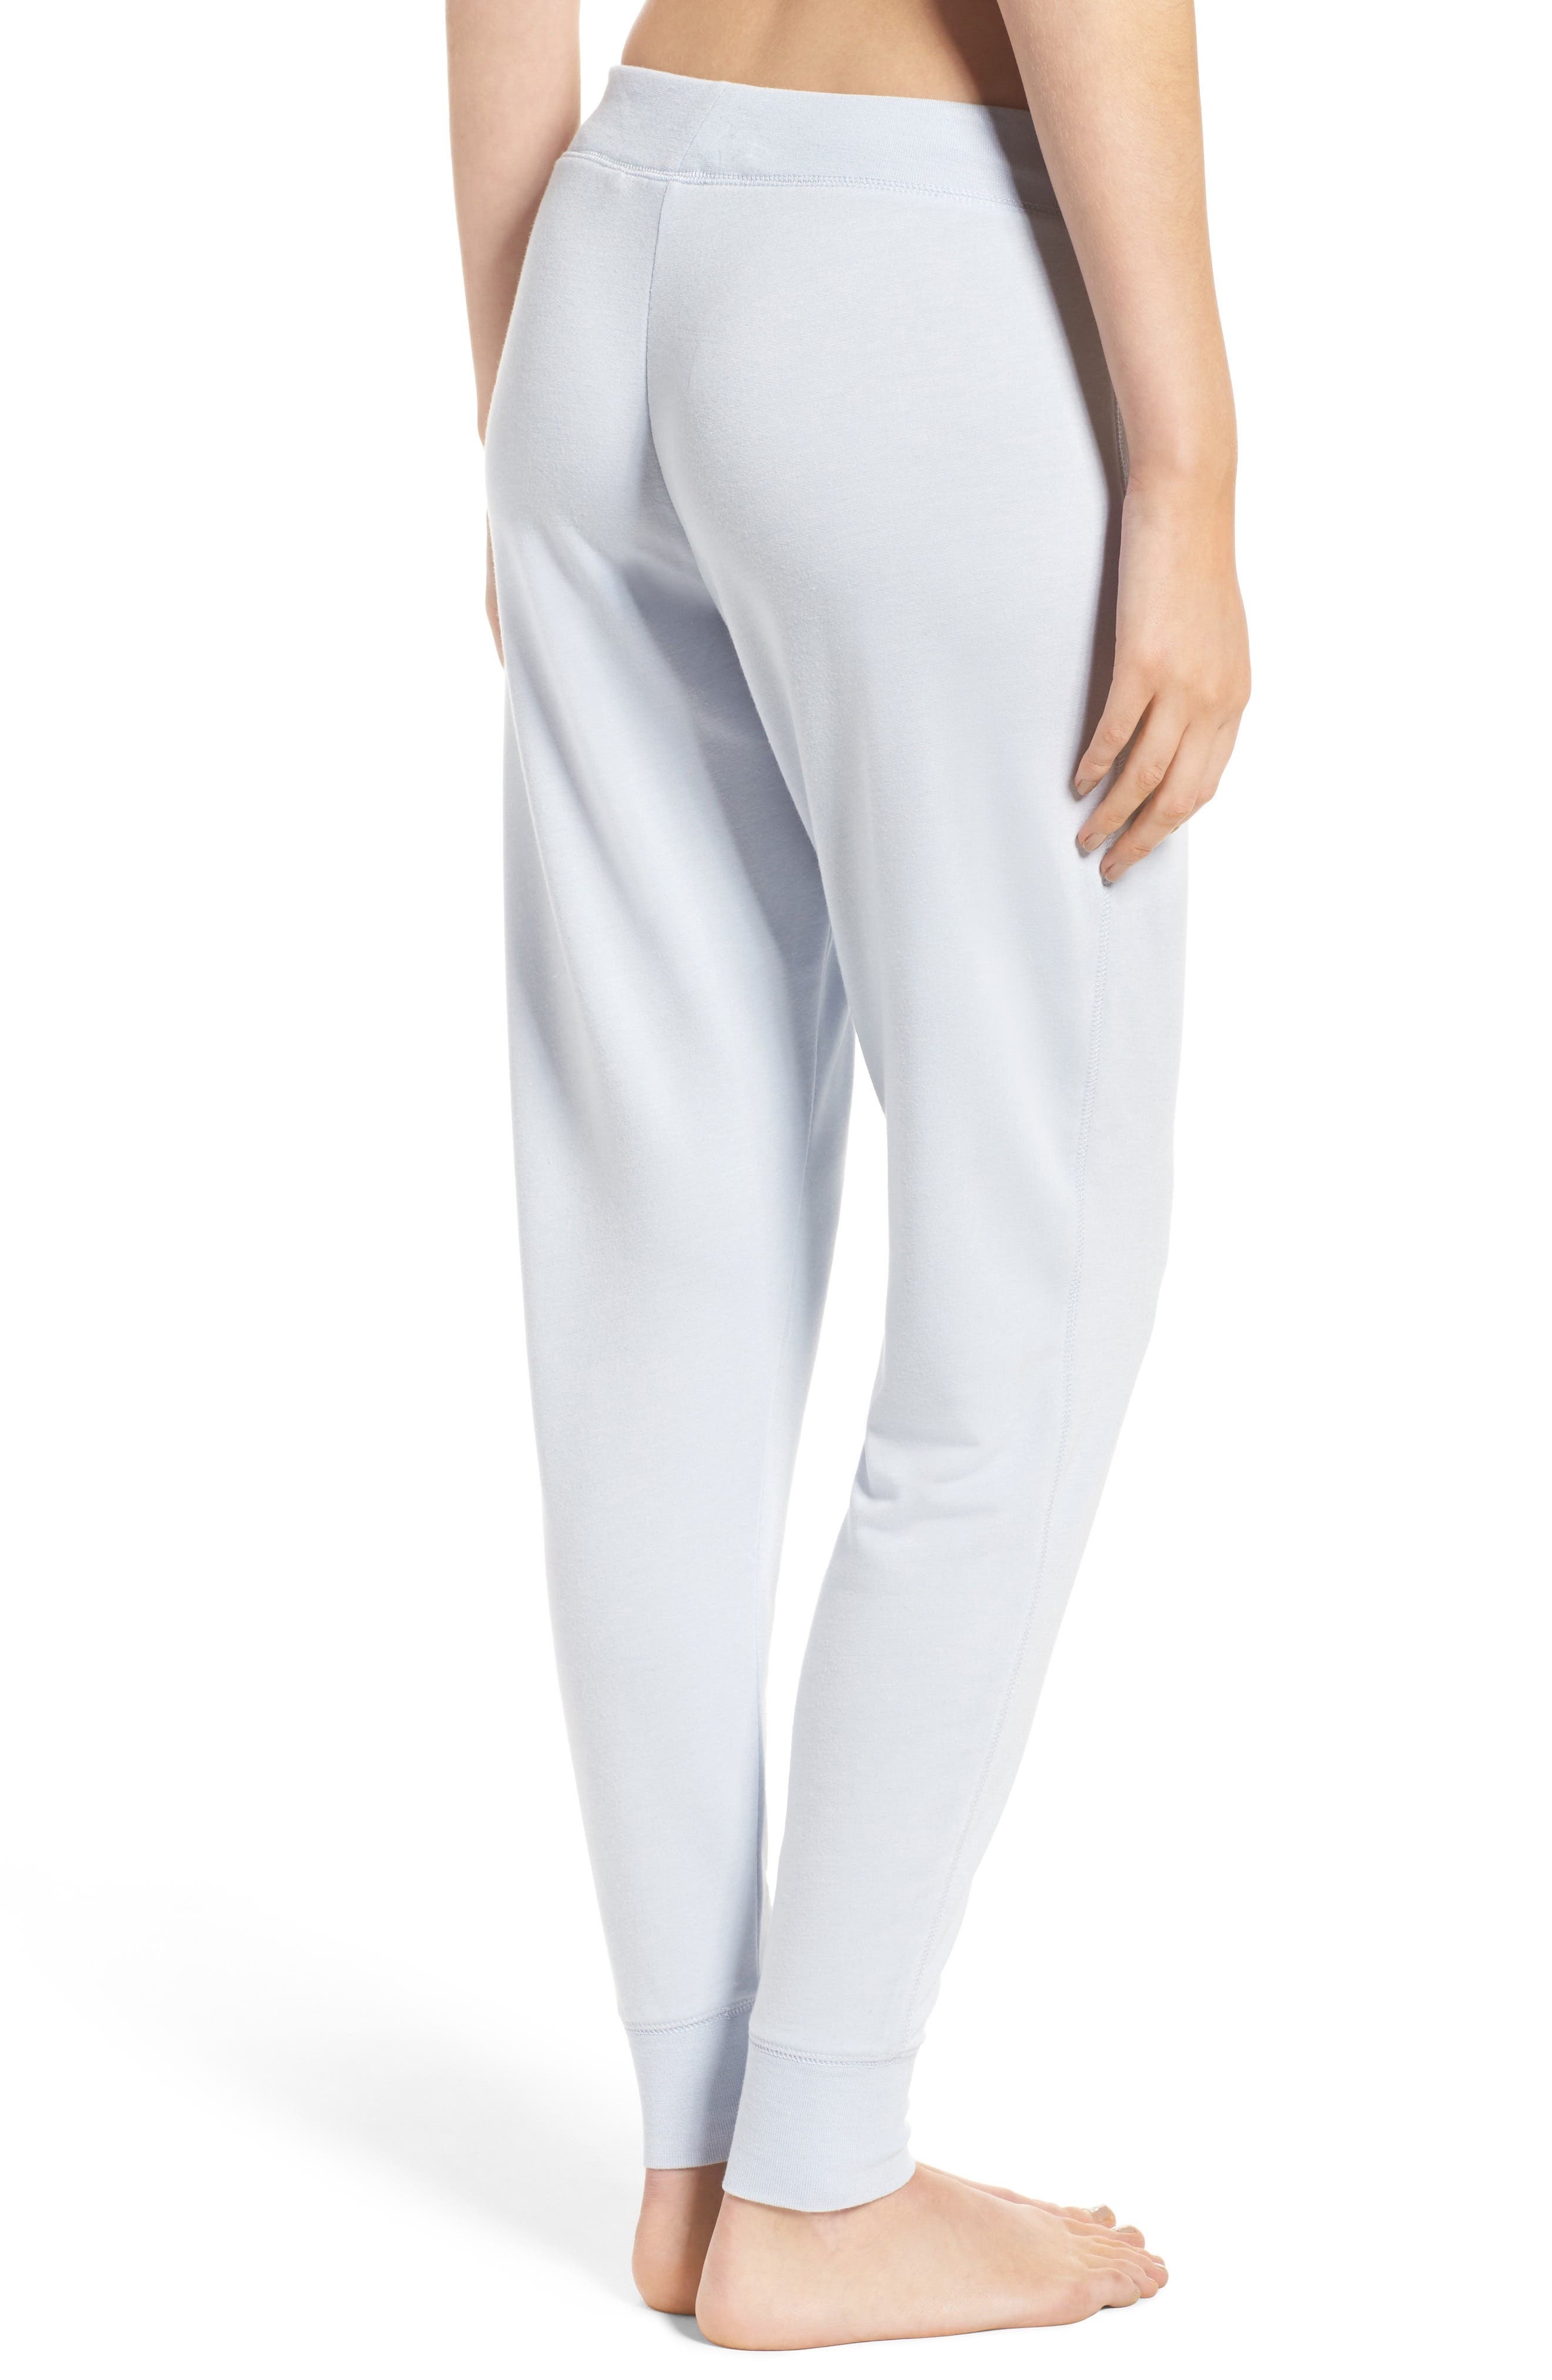 All About It Lounge Pants,                             Alternate thumbnail 14, color,